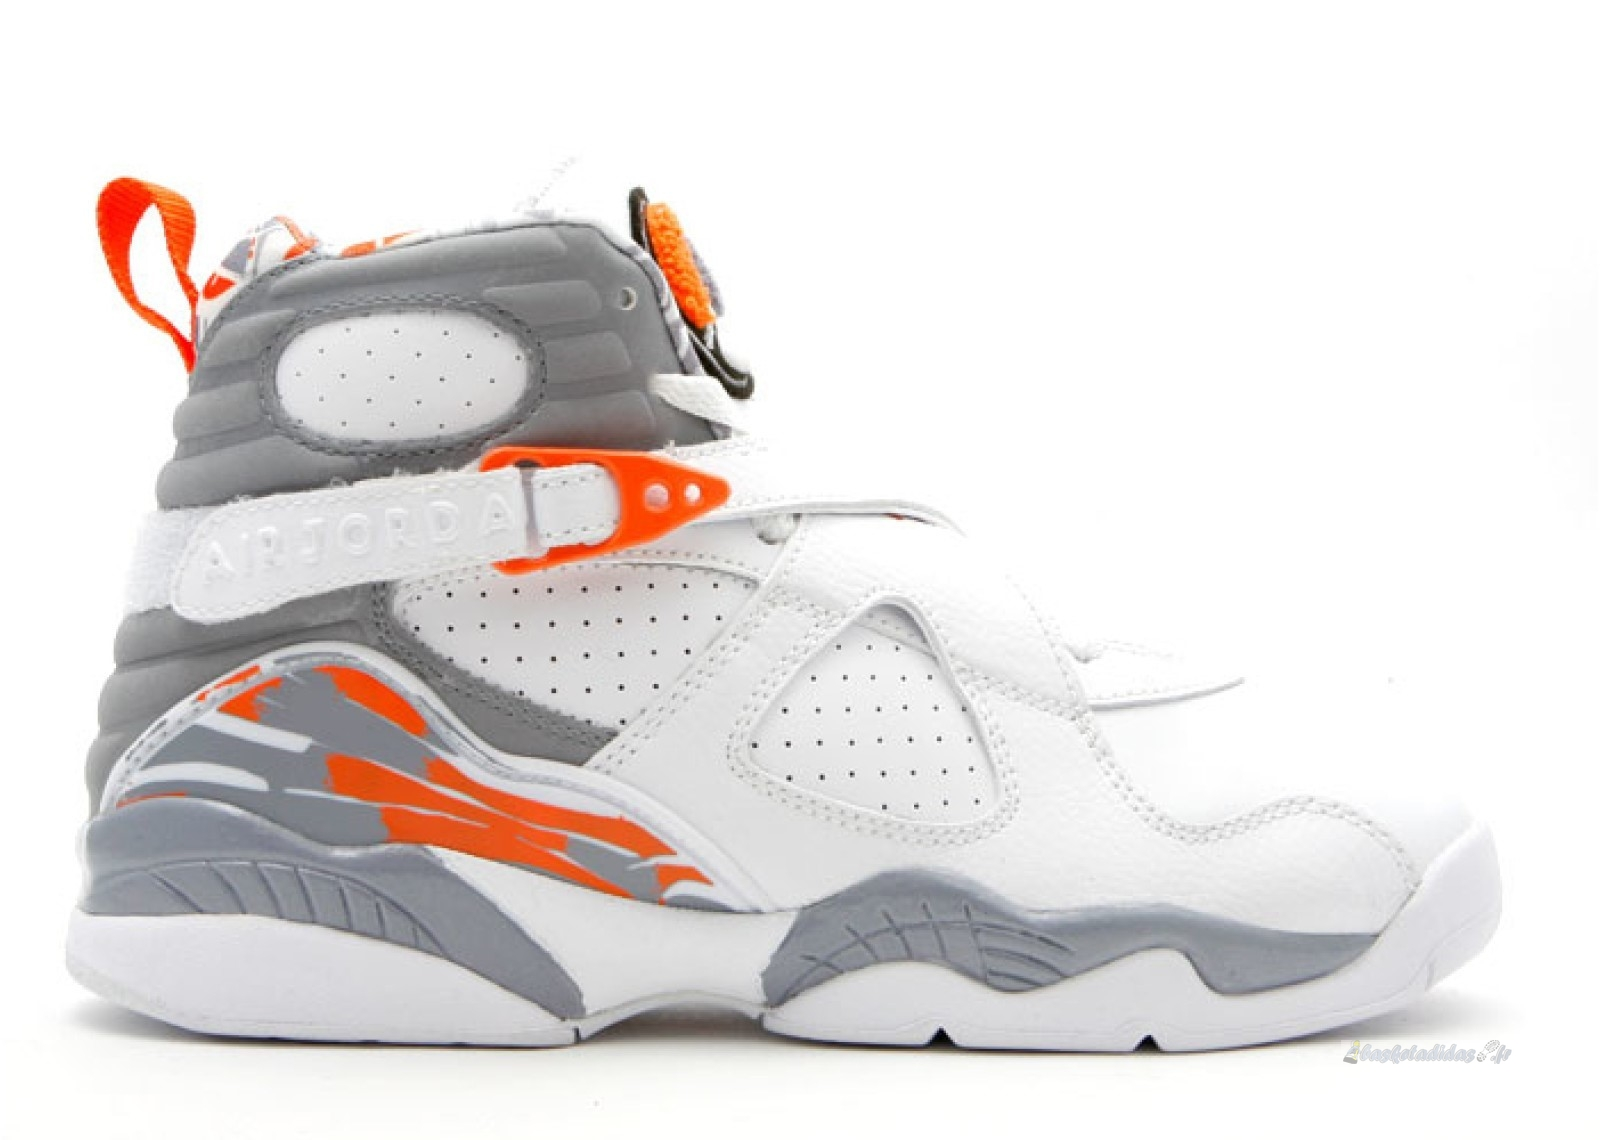 Chaussure de Basket Air Jordan 8 Retro (Gs) Gris Blanc (305368-102)